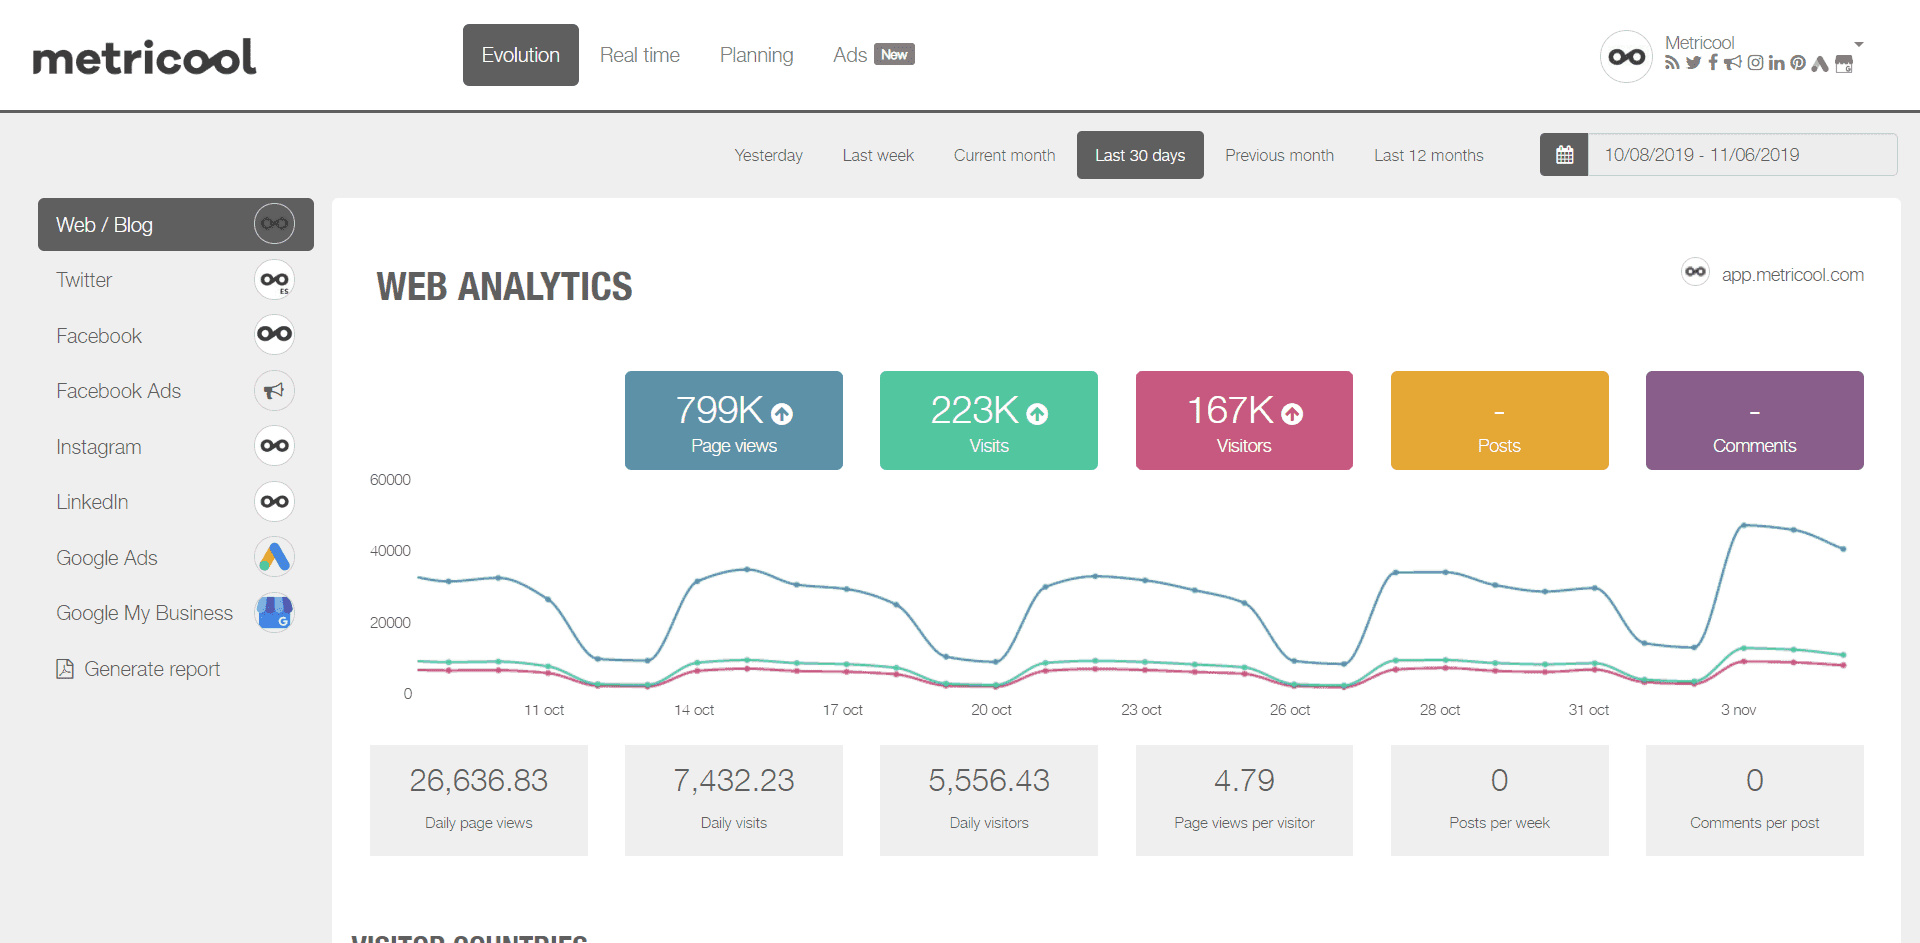 metricool web analytics